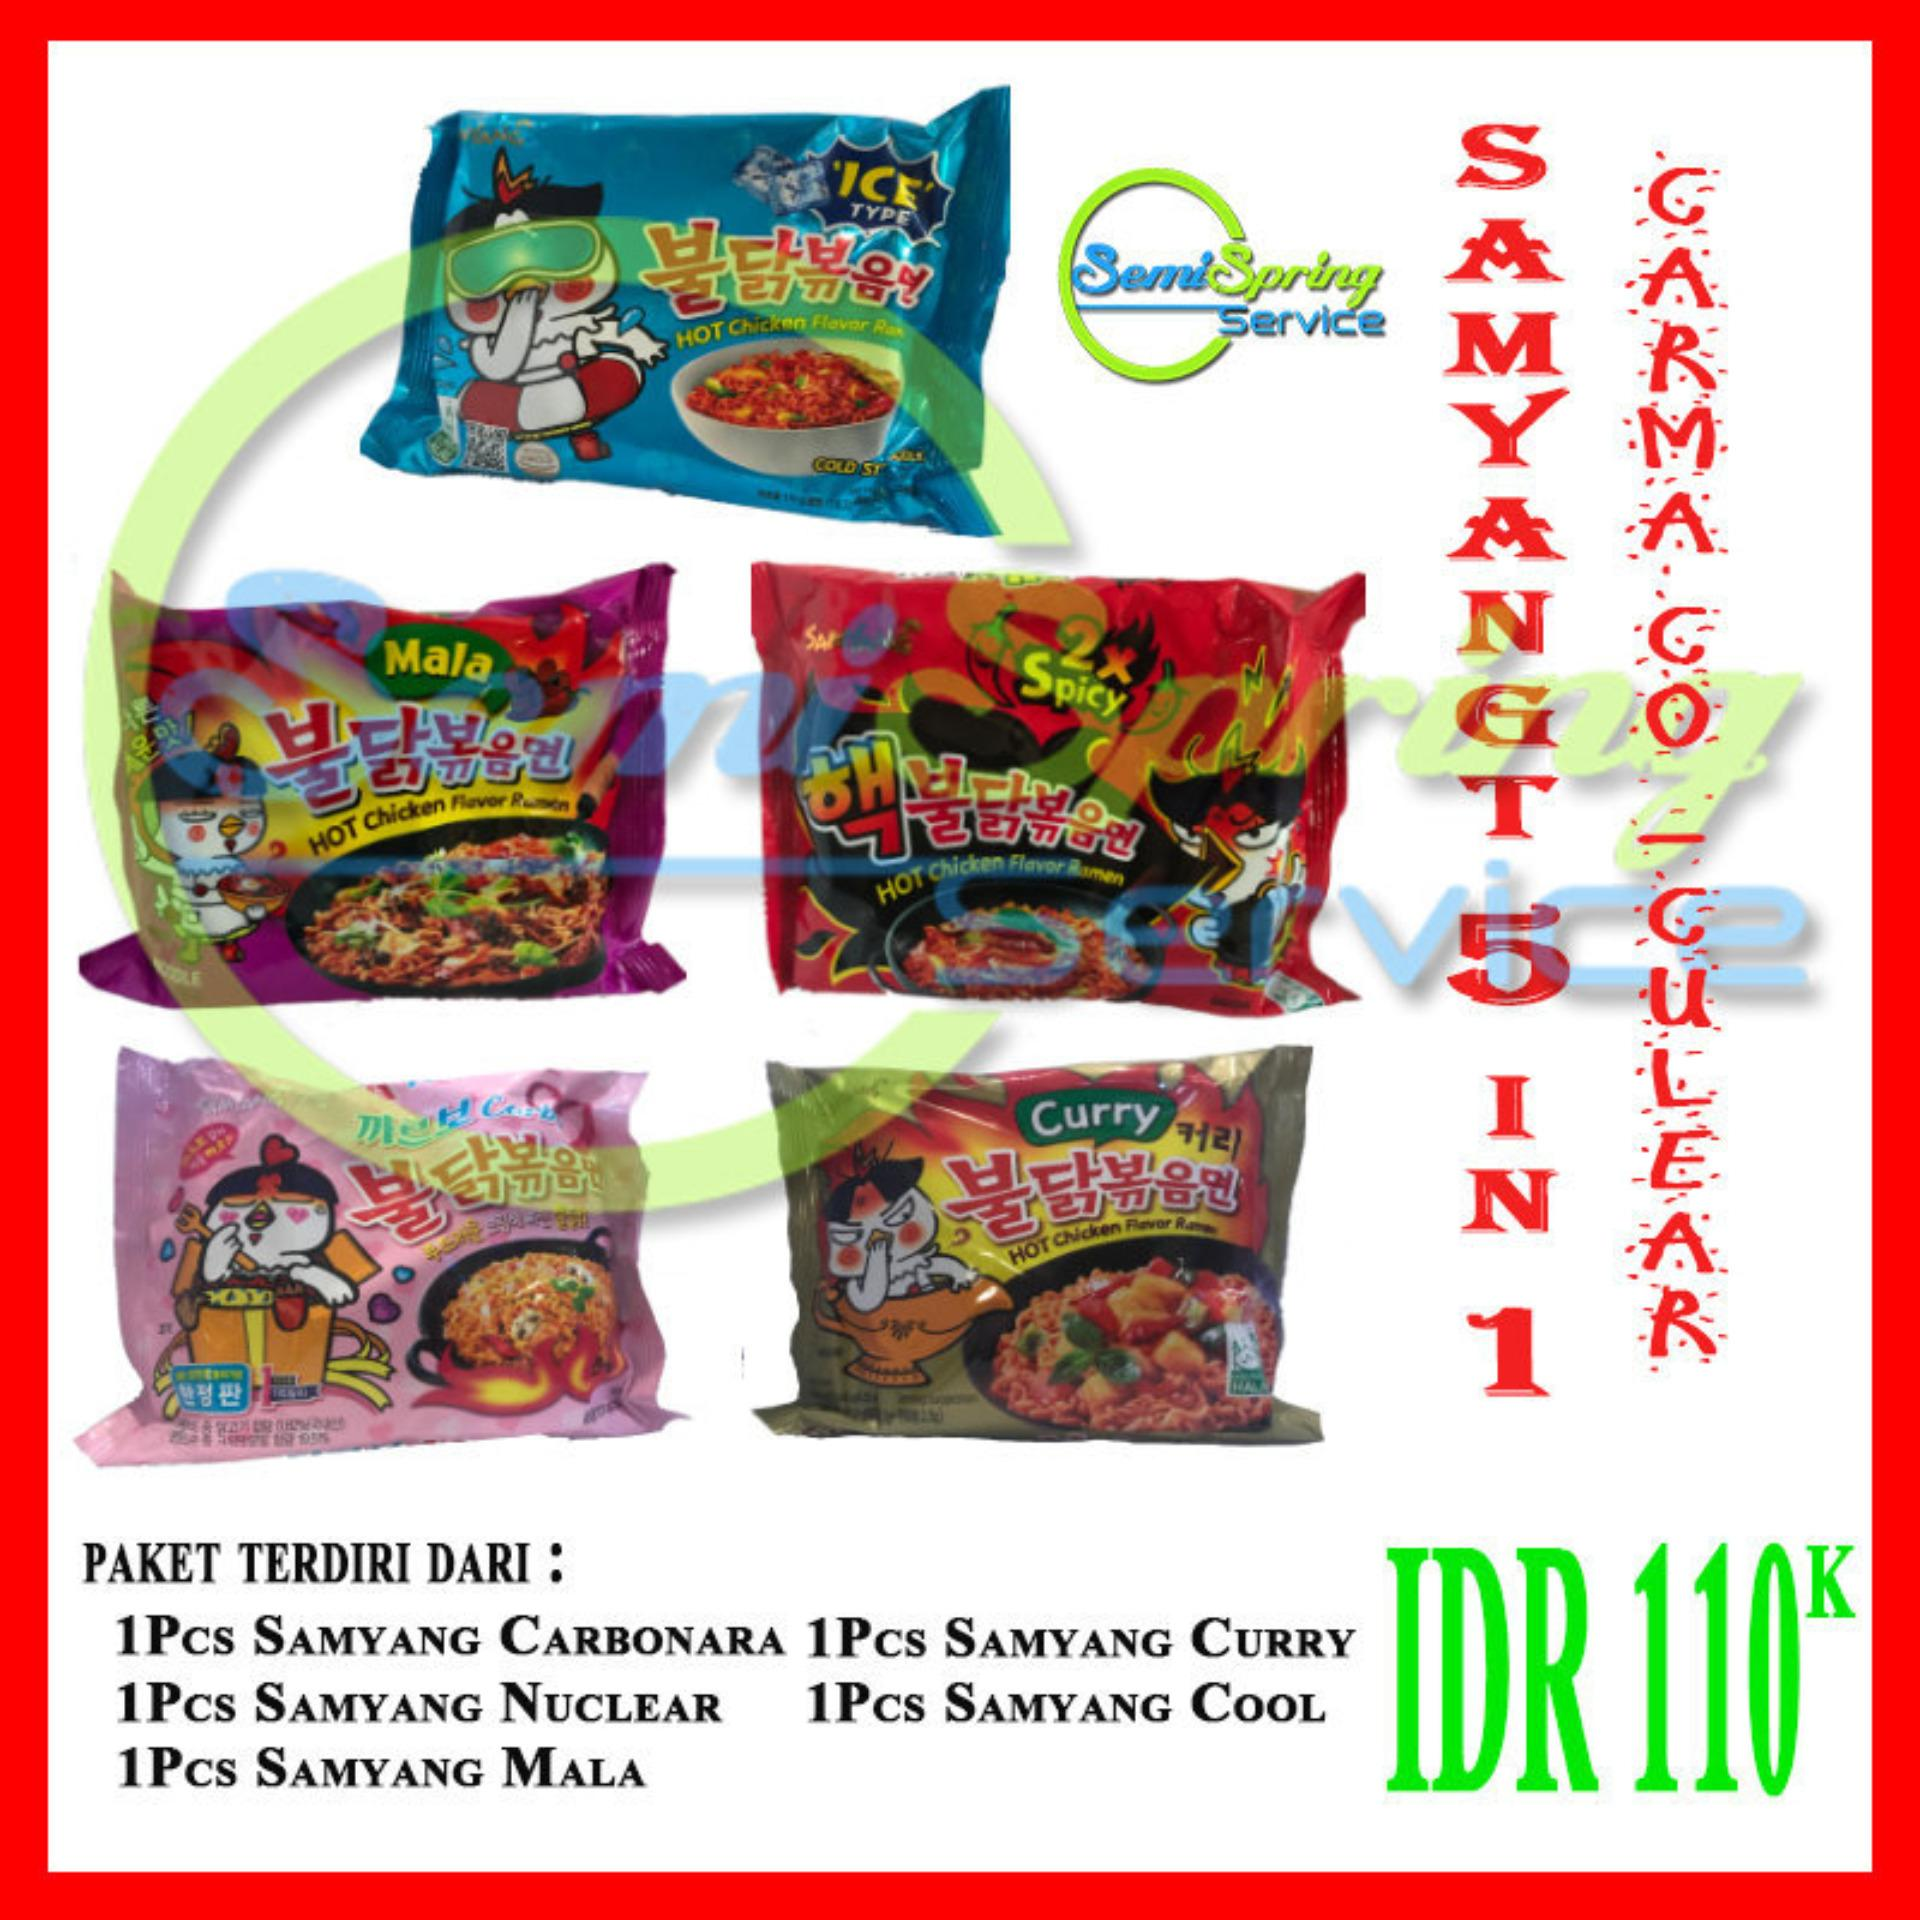 Jual Produk Mie Samyang Terbaru Curry Hot Chicken Logo Halal 5in1 Carma Co Curlear